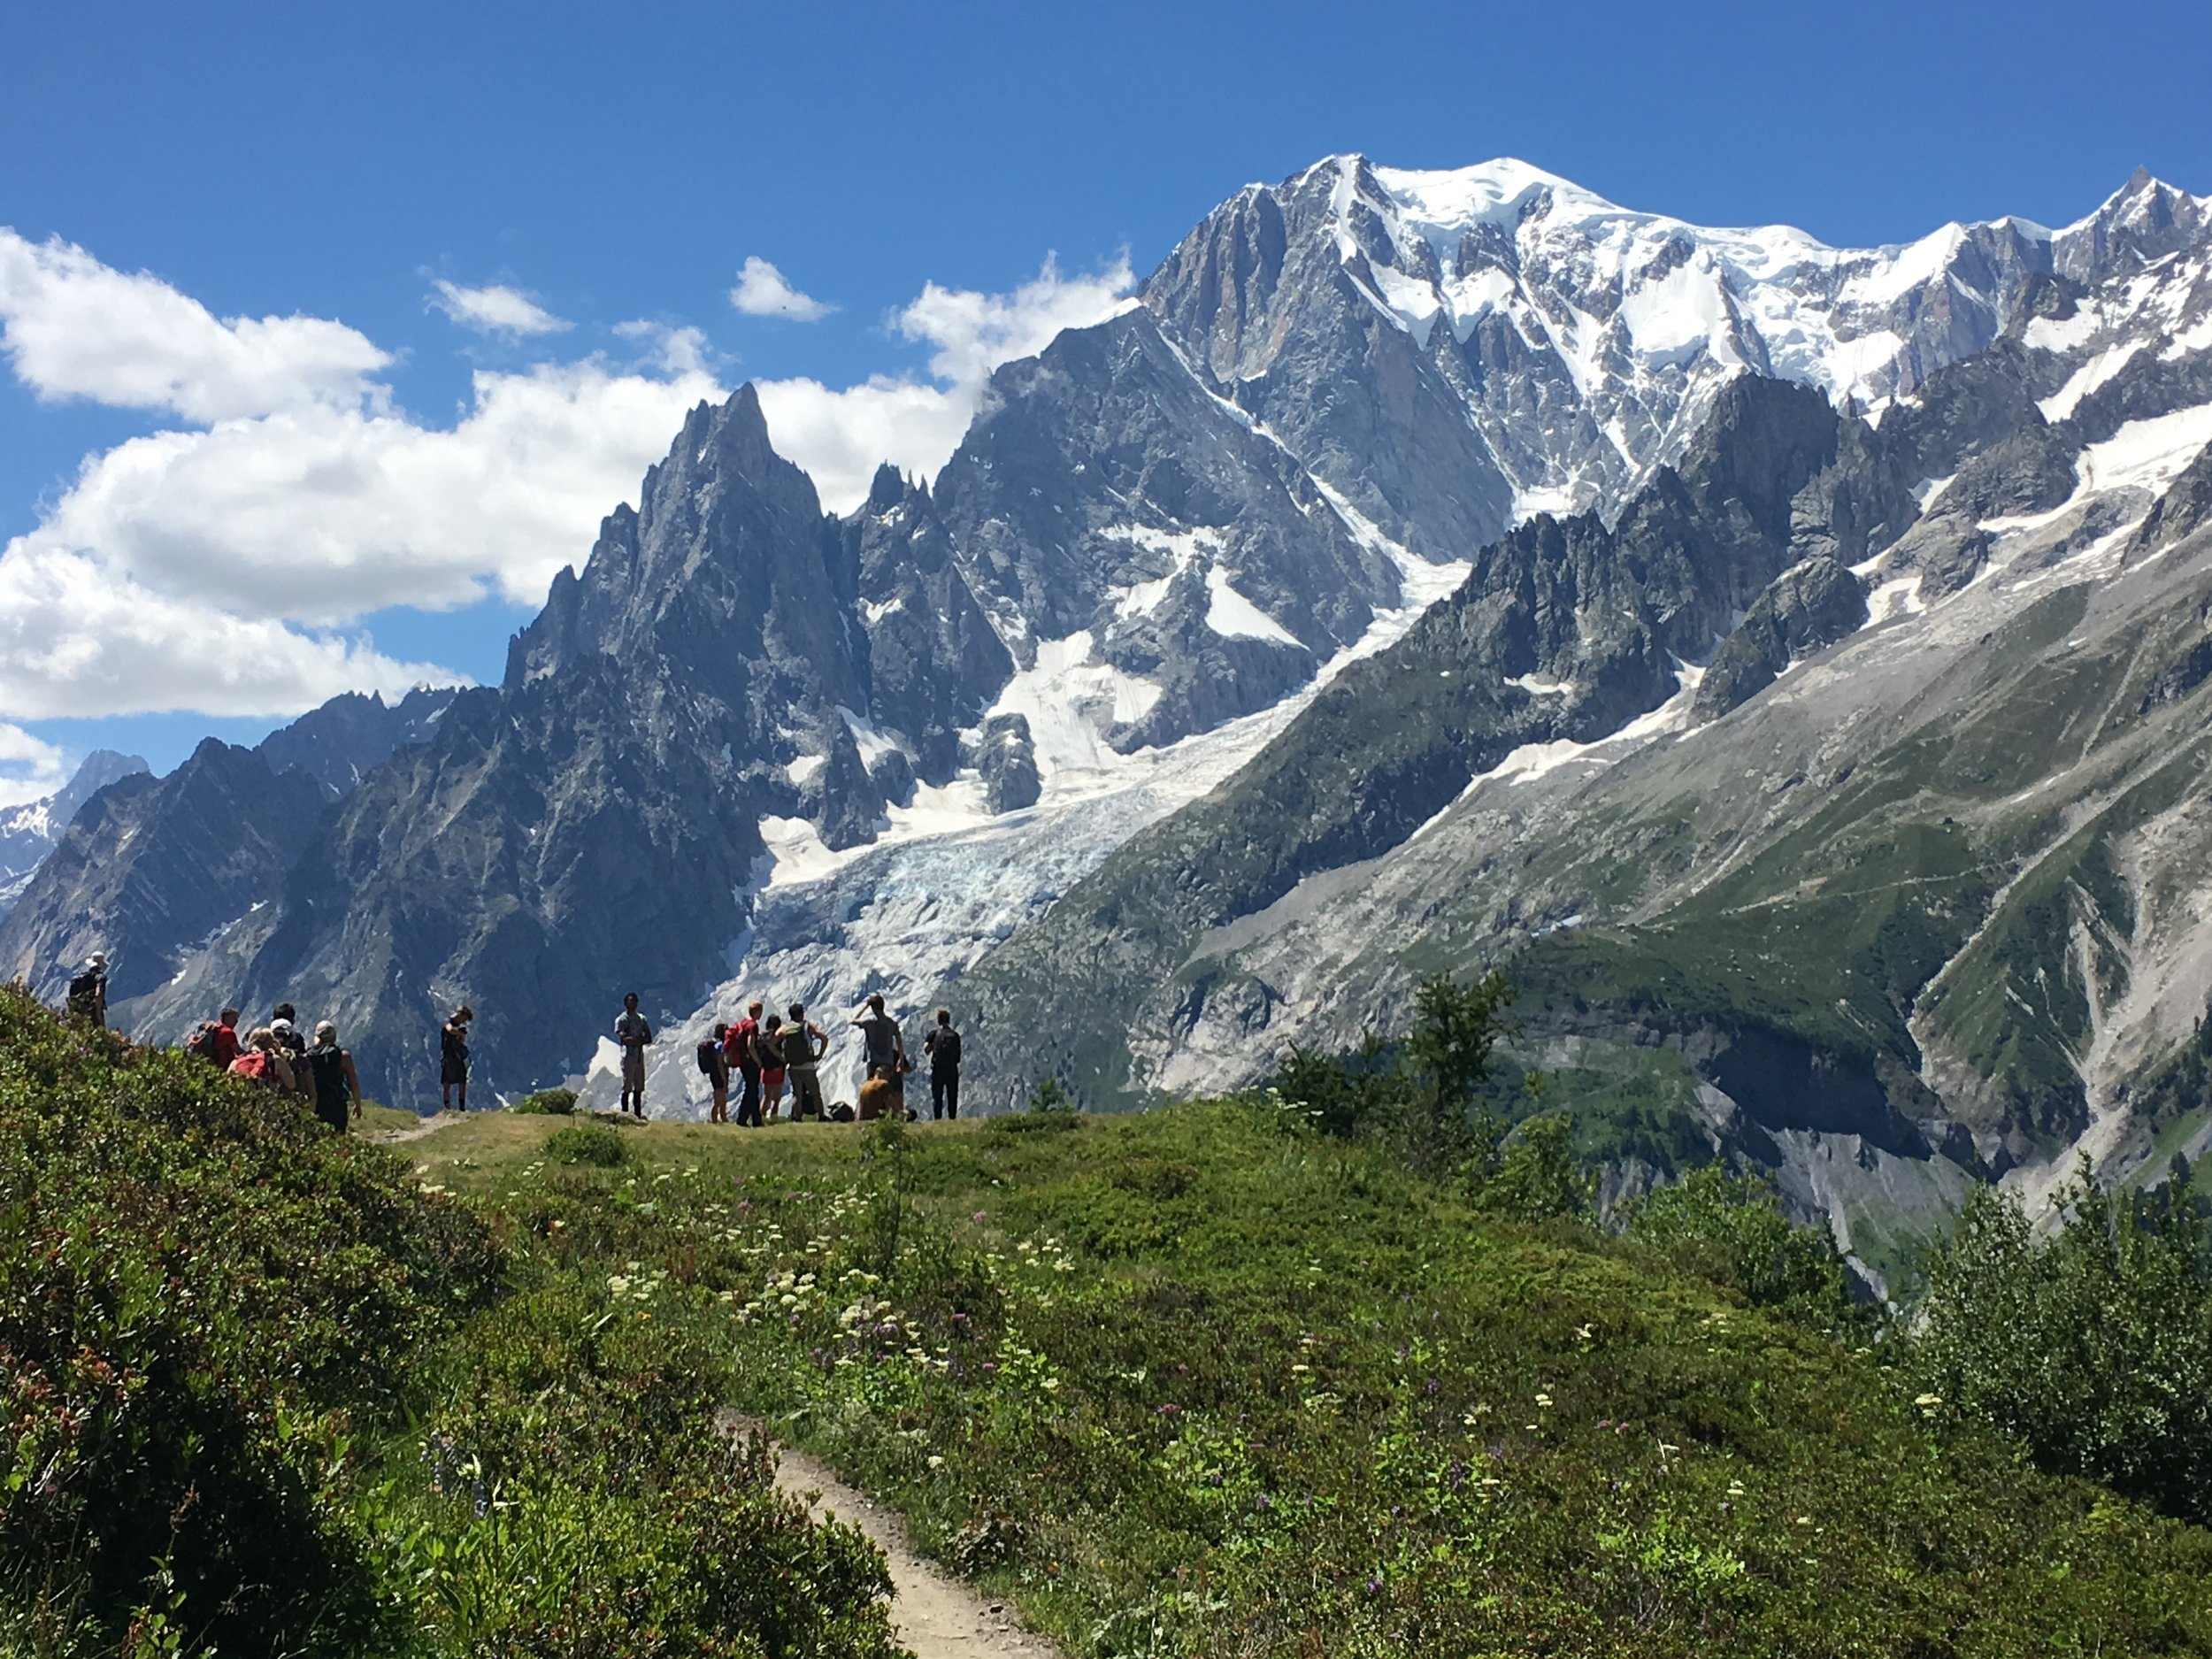 Students hiking above the Mount. Blanc valley on the Tour du Mount Blanc trail.